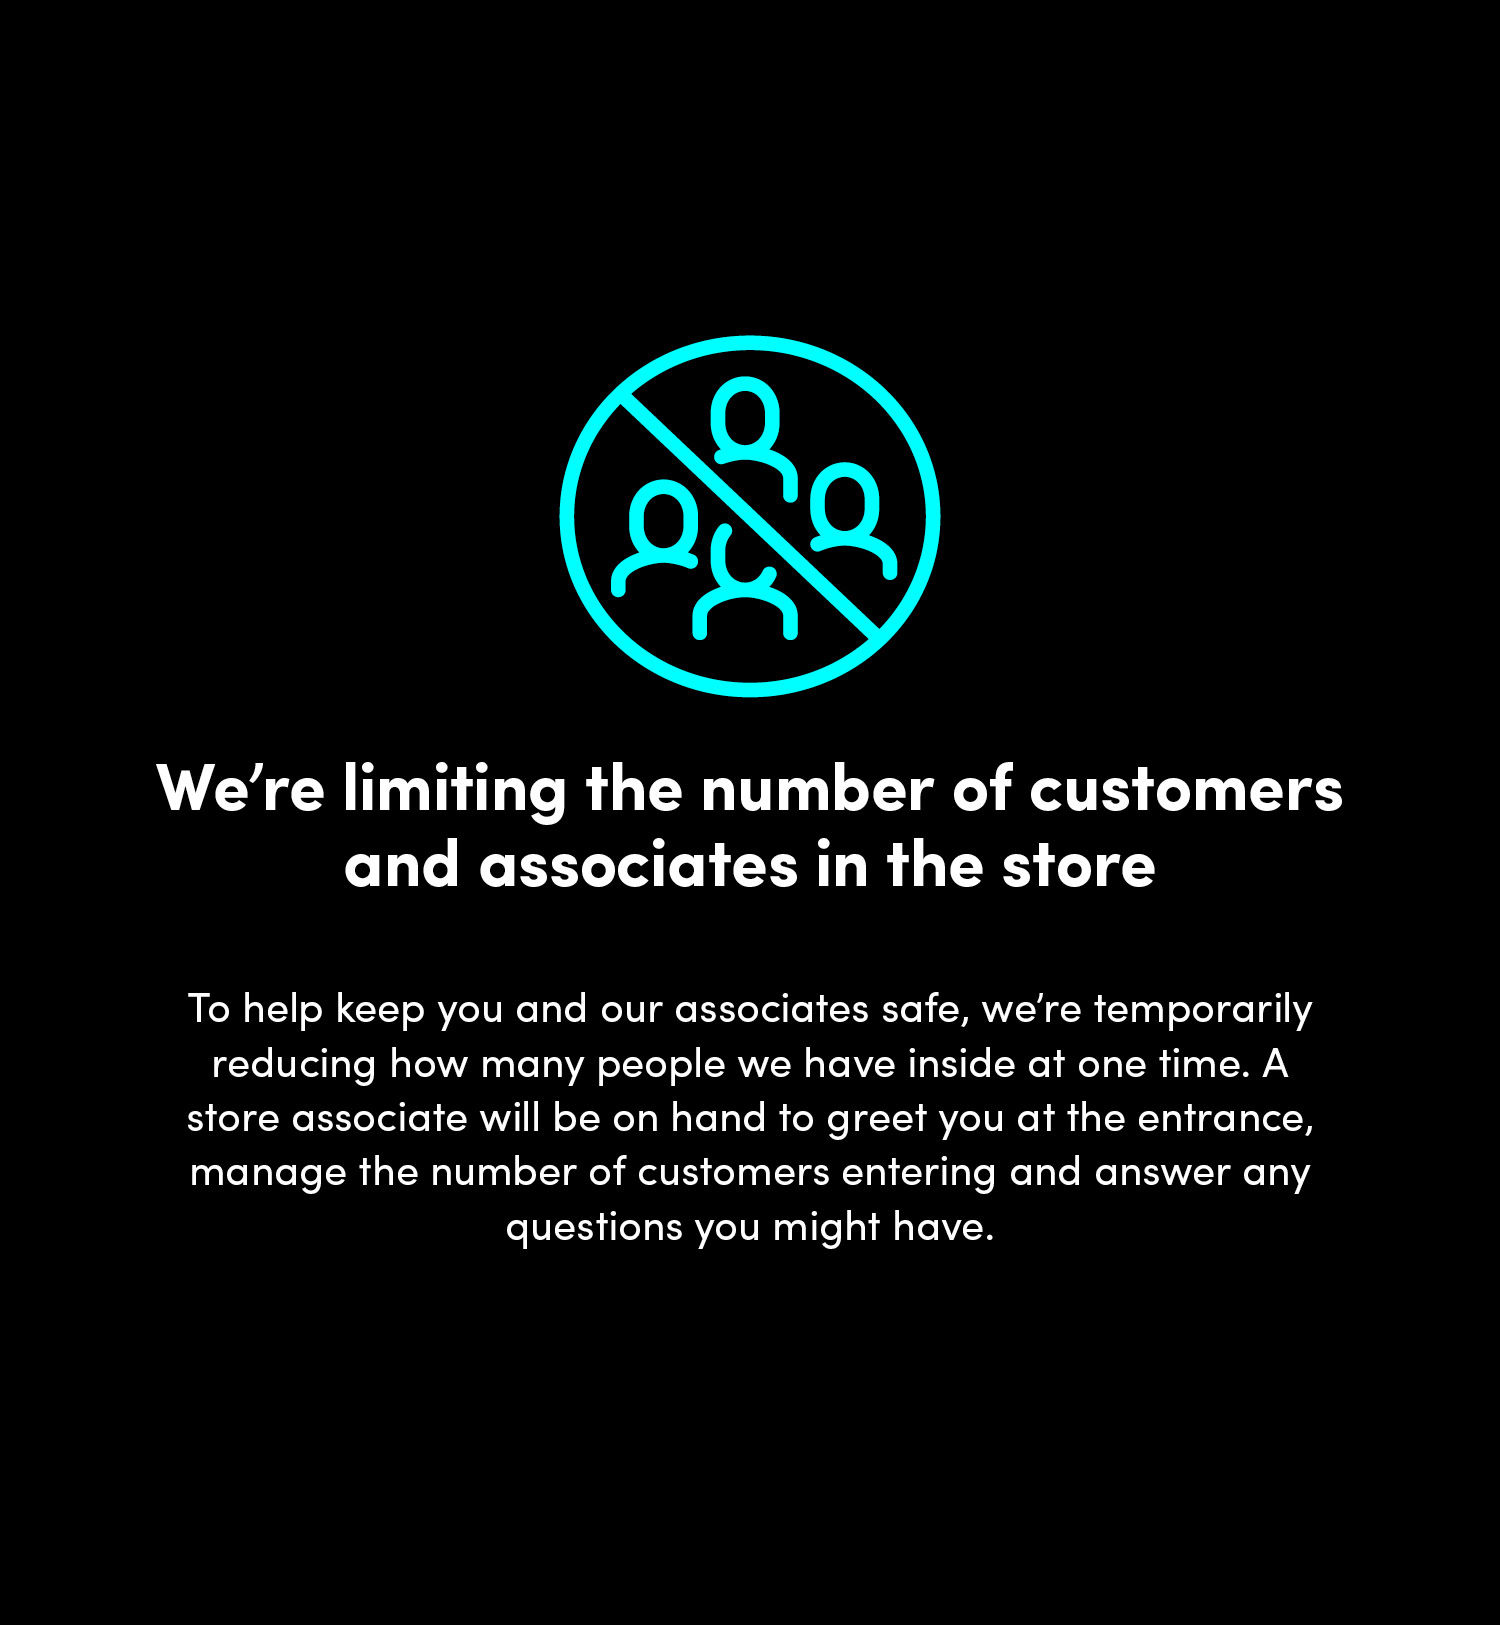 We're limiting the number of customers and associates in the store. To help keep you and our associates safe, we're temporarily reducing how manay people we have inside at one time. A store associate will be on hand to greet you at the entrance, manage the number of customers entering and answer any questions you might have.